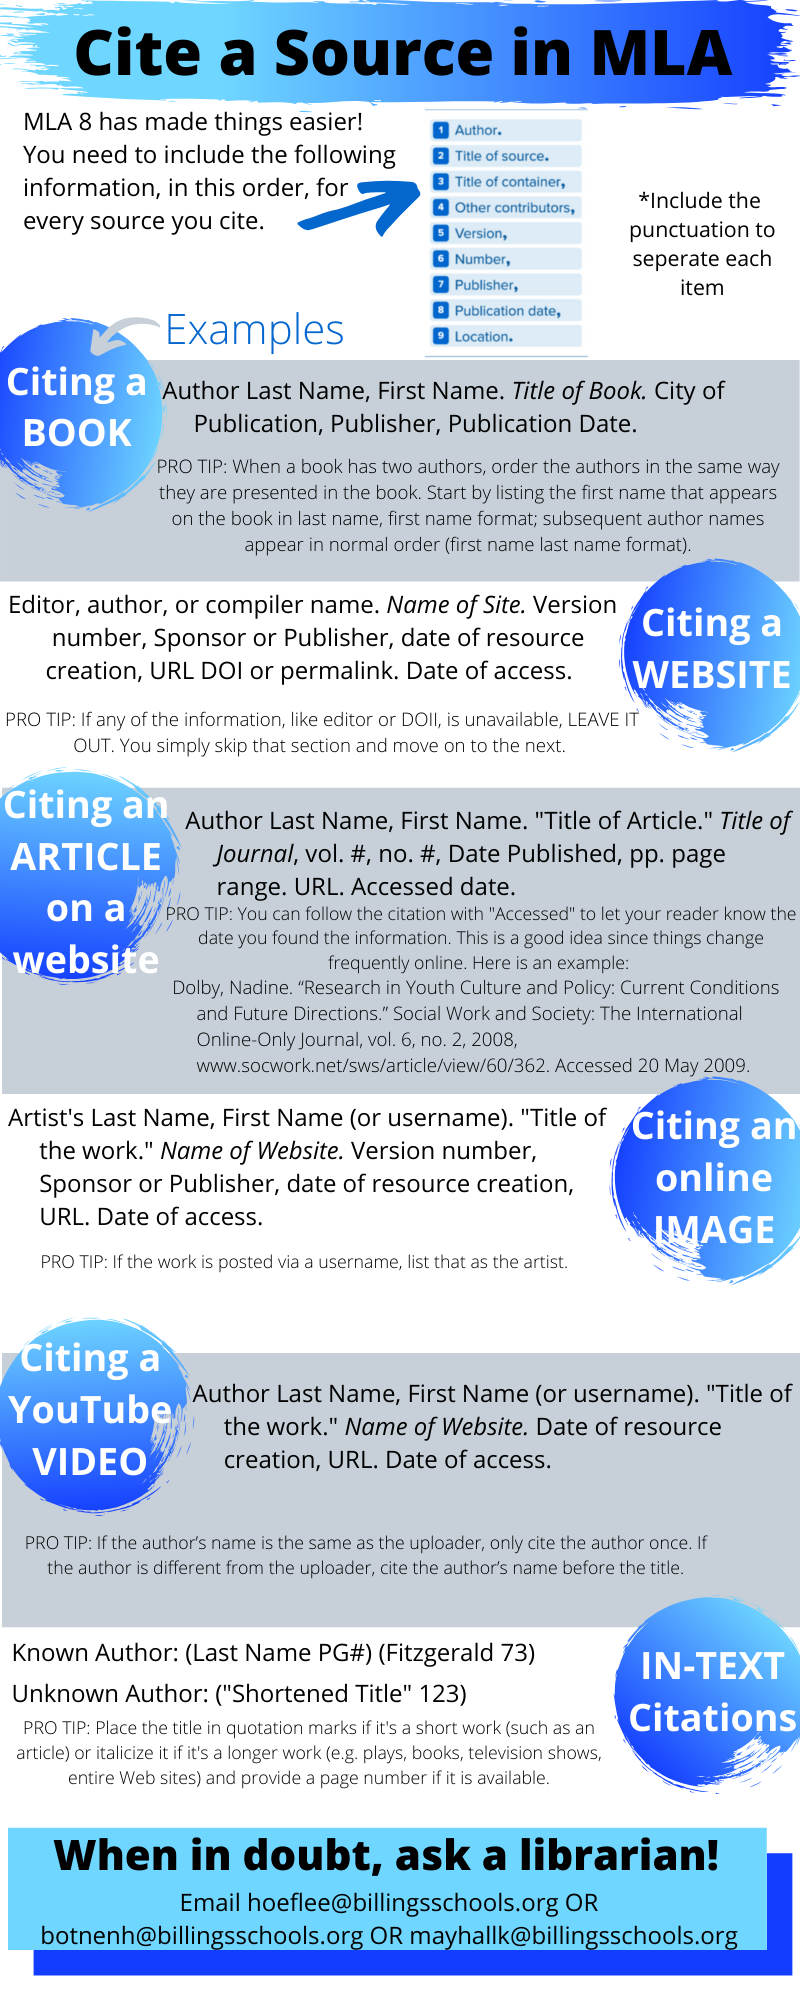 Citing a Source in MLA. MLA 8 has made things easier! You need to include the following information, in this order, for every source you cite. 1. Author. 2. Title of Source. 3. Title of Container, 4. Other contributors, 5. Version, 6. Number, 7. Publisher, 8. Publication date, 9. Location. Include the punctuation to separate each item. Examples: Citing a BOOK. Author Last Name, First Name. Title of Book in Italics. City of Publication, Publisher, Publication Date. PRO TIP: When a book has two authors, order the authors in the same way they are presented in the book. Start by listing the first name that appears on the book in last name, first name format; subsequent author names appear in normal order (first name last name format). Citing a WEBSITE: Editor, author, or compiler name. Name of site in italics. Version number, Sponsor or Publisher, date of resource creation, URL DOI or permalink. Date of access. PRO TIP: If any of the information, like editor or DOI, is unavailable, LEAVE IT OUT. You simply skip that section and move on to the next. Citing an ARTICLE on a website: Author Last Name, First Name.